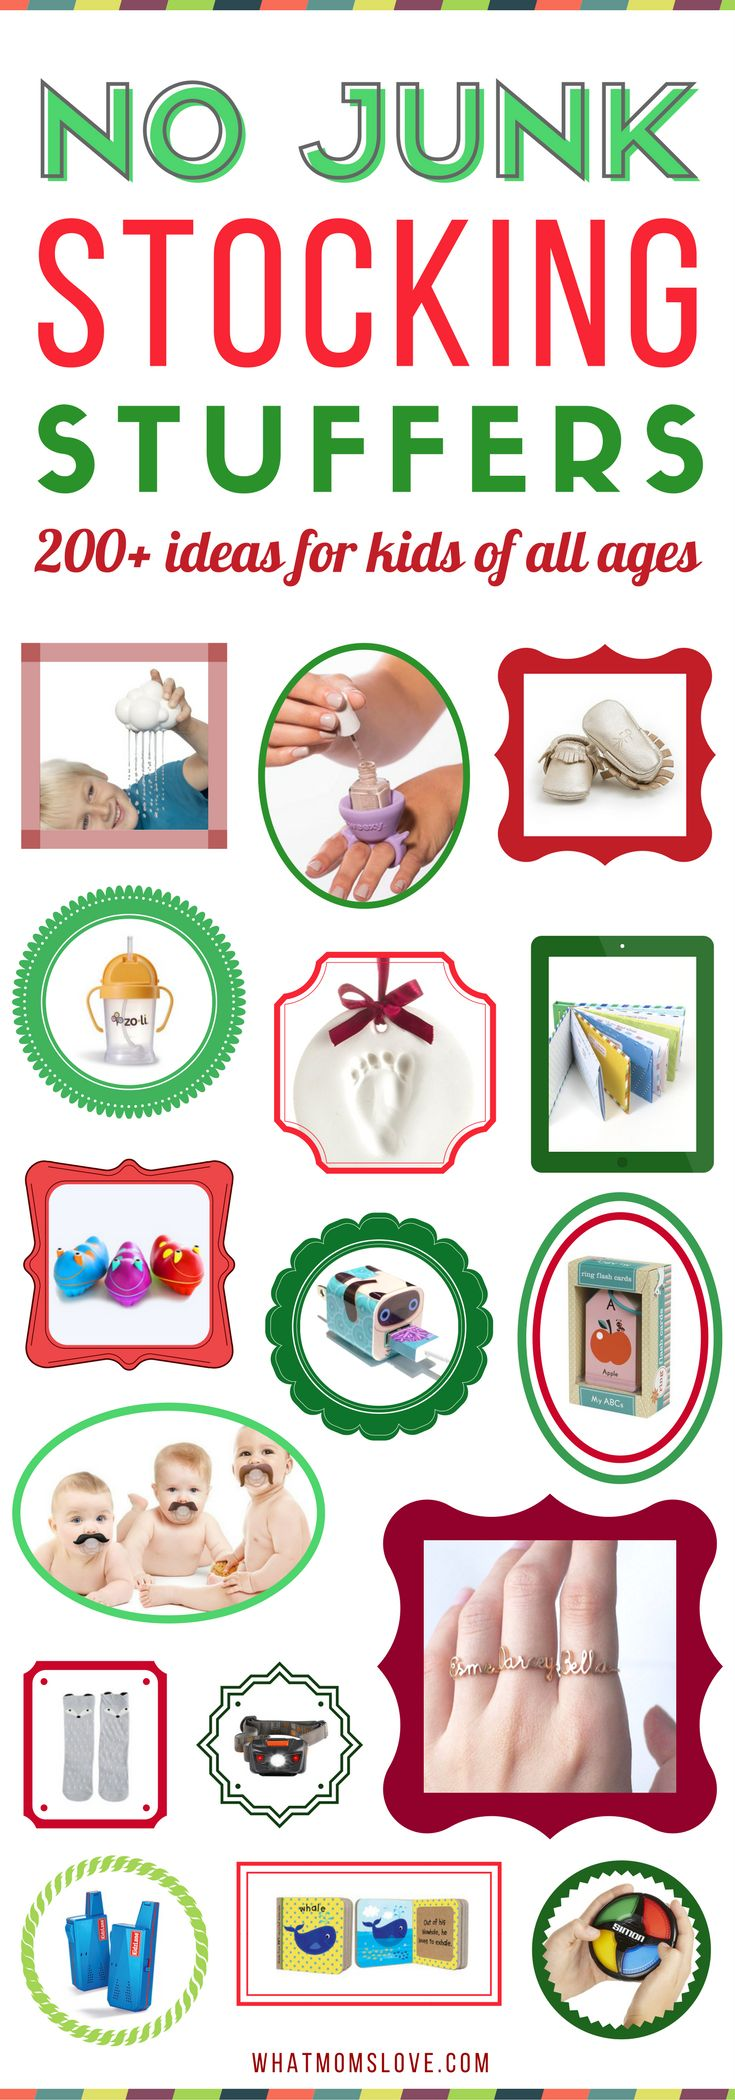 Stocking Stuffers for kids | Best ideas for boys and girls from baby, toddlers, tween and teenagers | Unique and useful stocking stuffers for Christmas #stockings #gifts #stockingstuffers